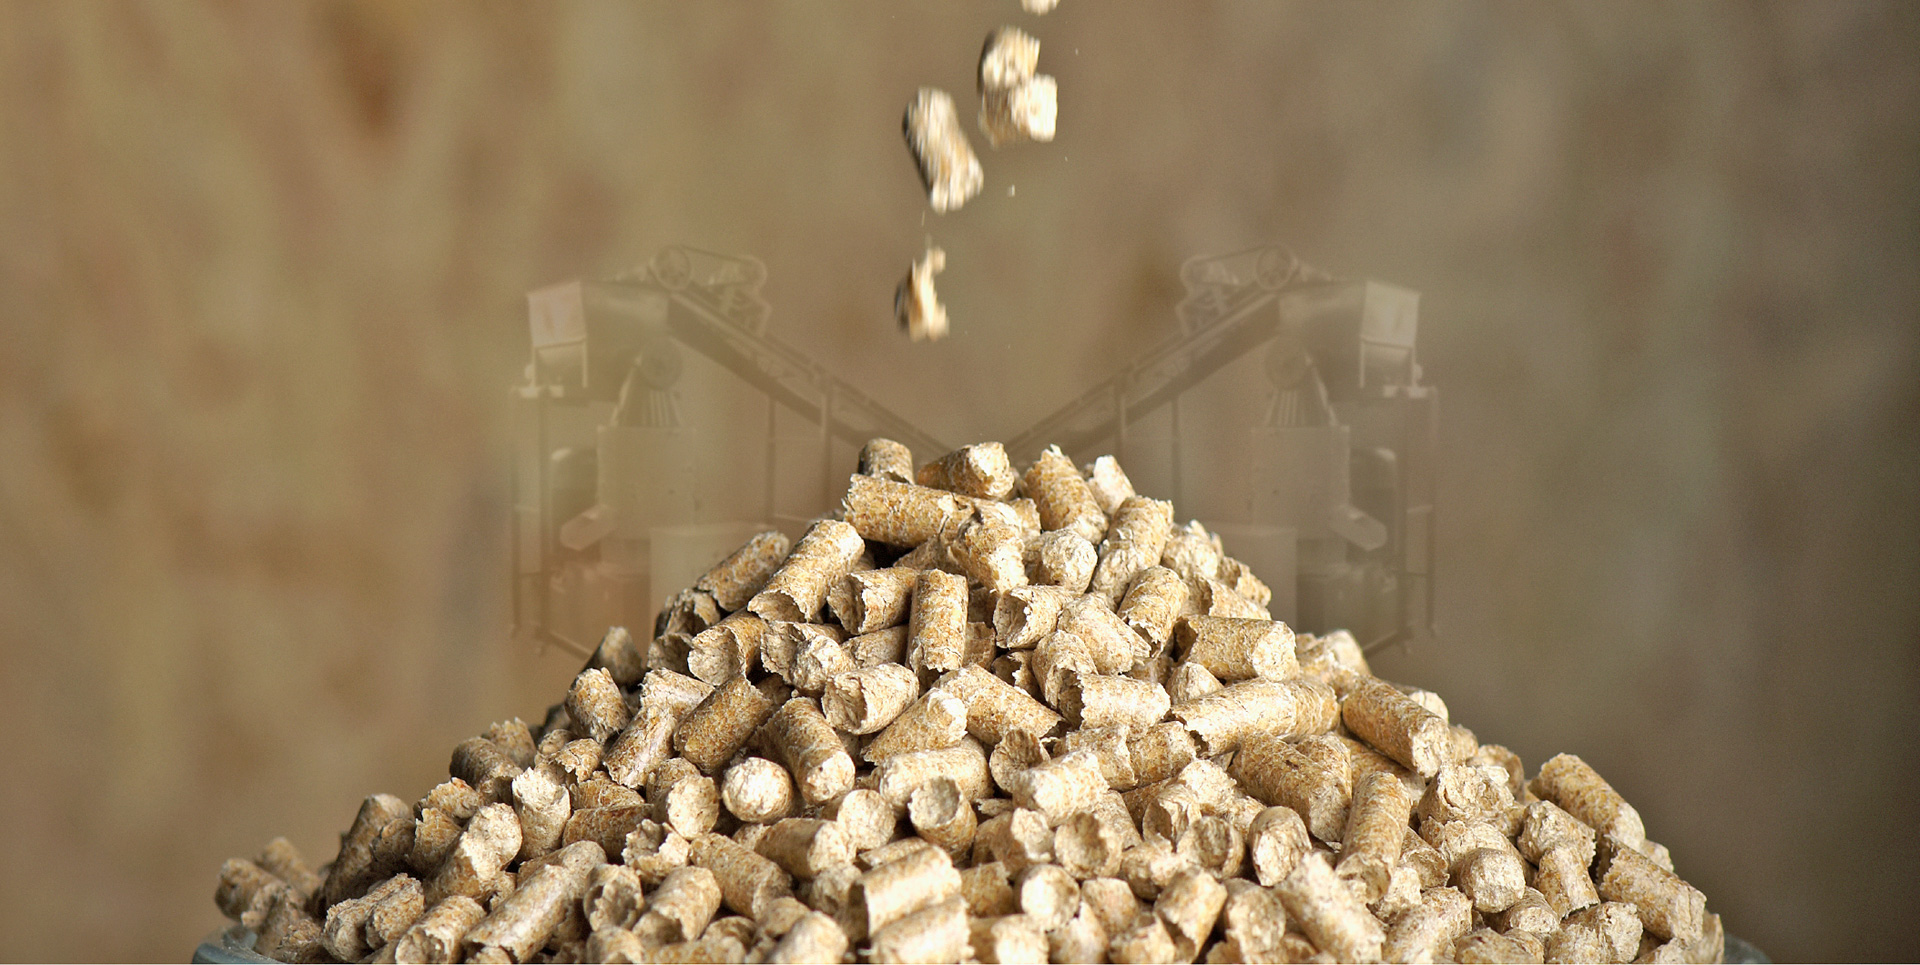 Our job is to make pellet from every product